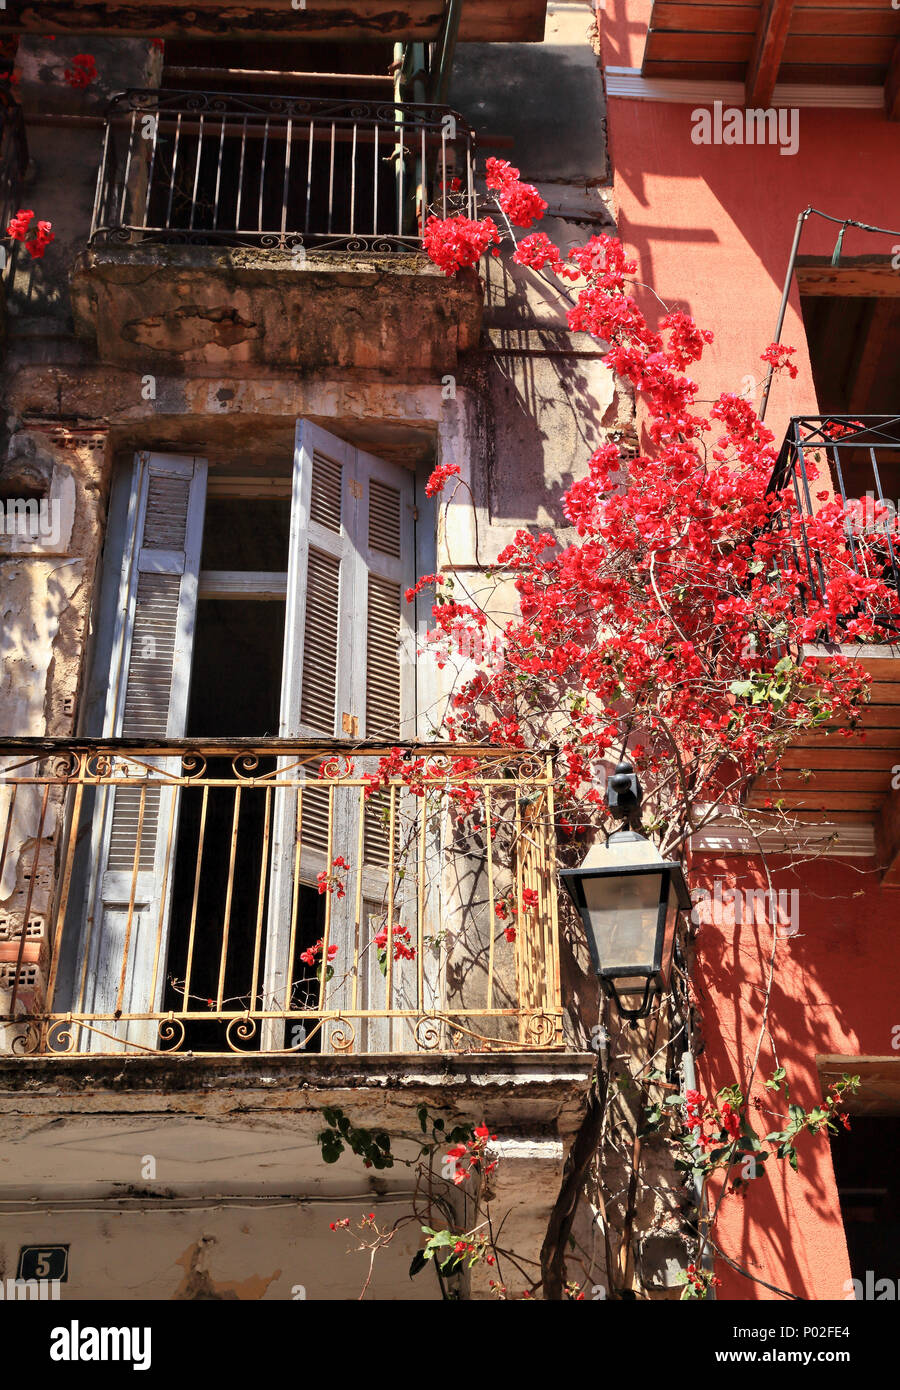 Red bougainvillea spectabilis flowers on the facade of an old house in Nafplio, Greece - Stock Image